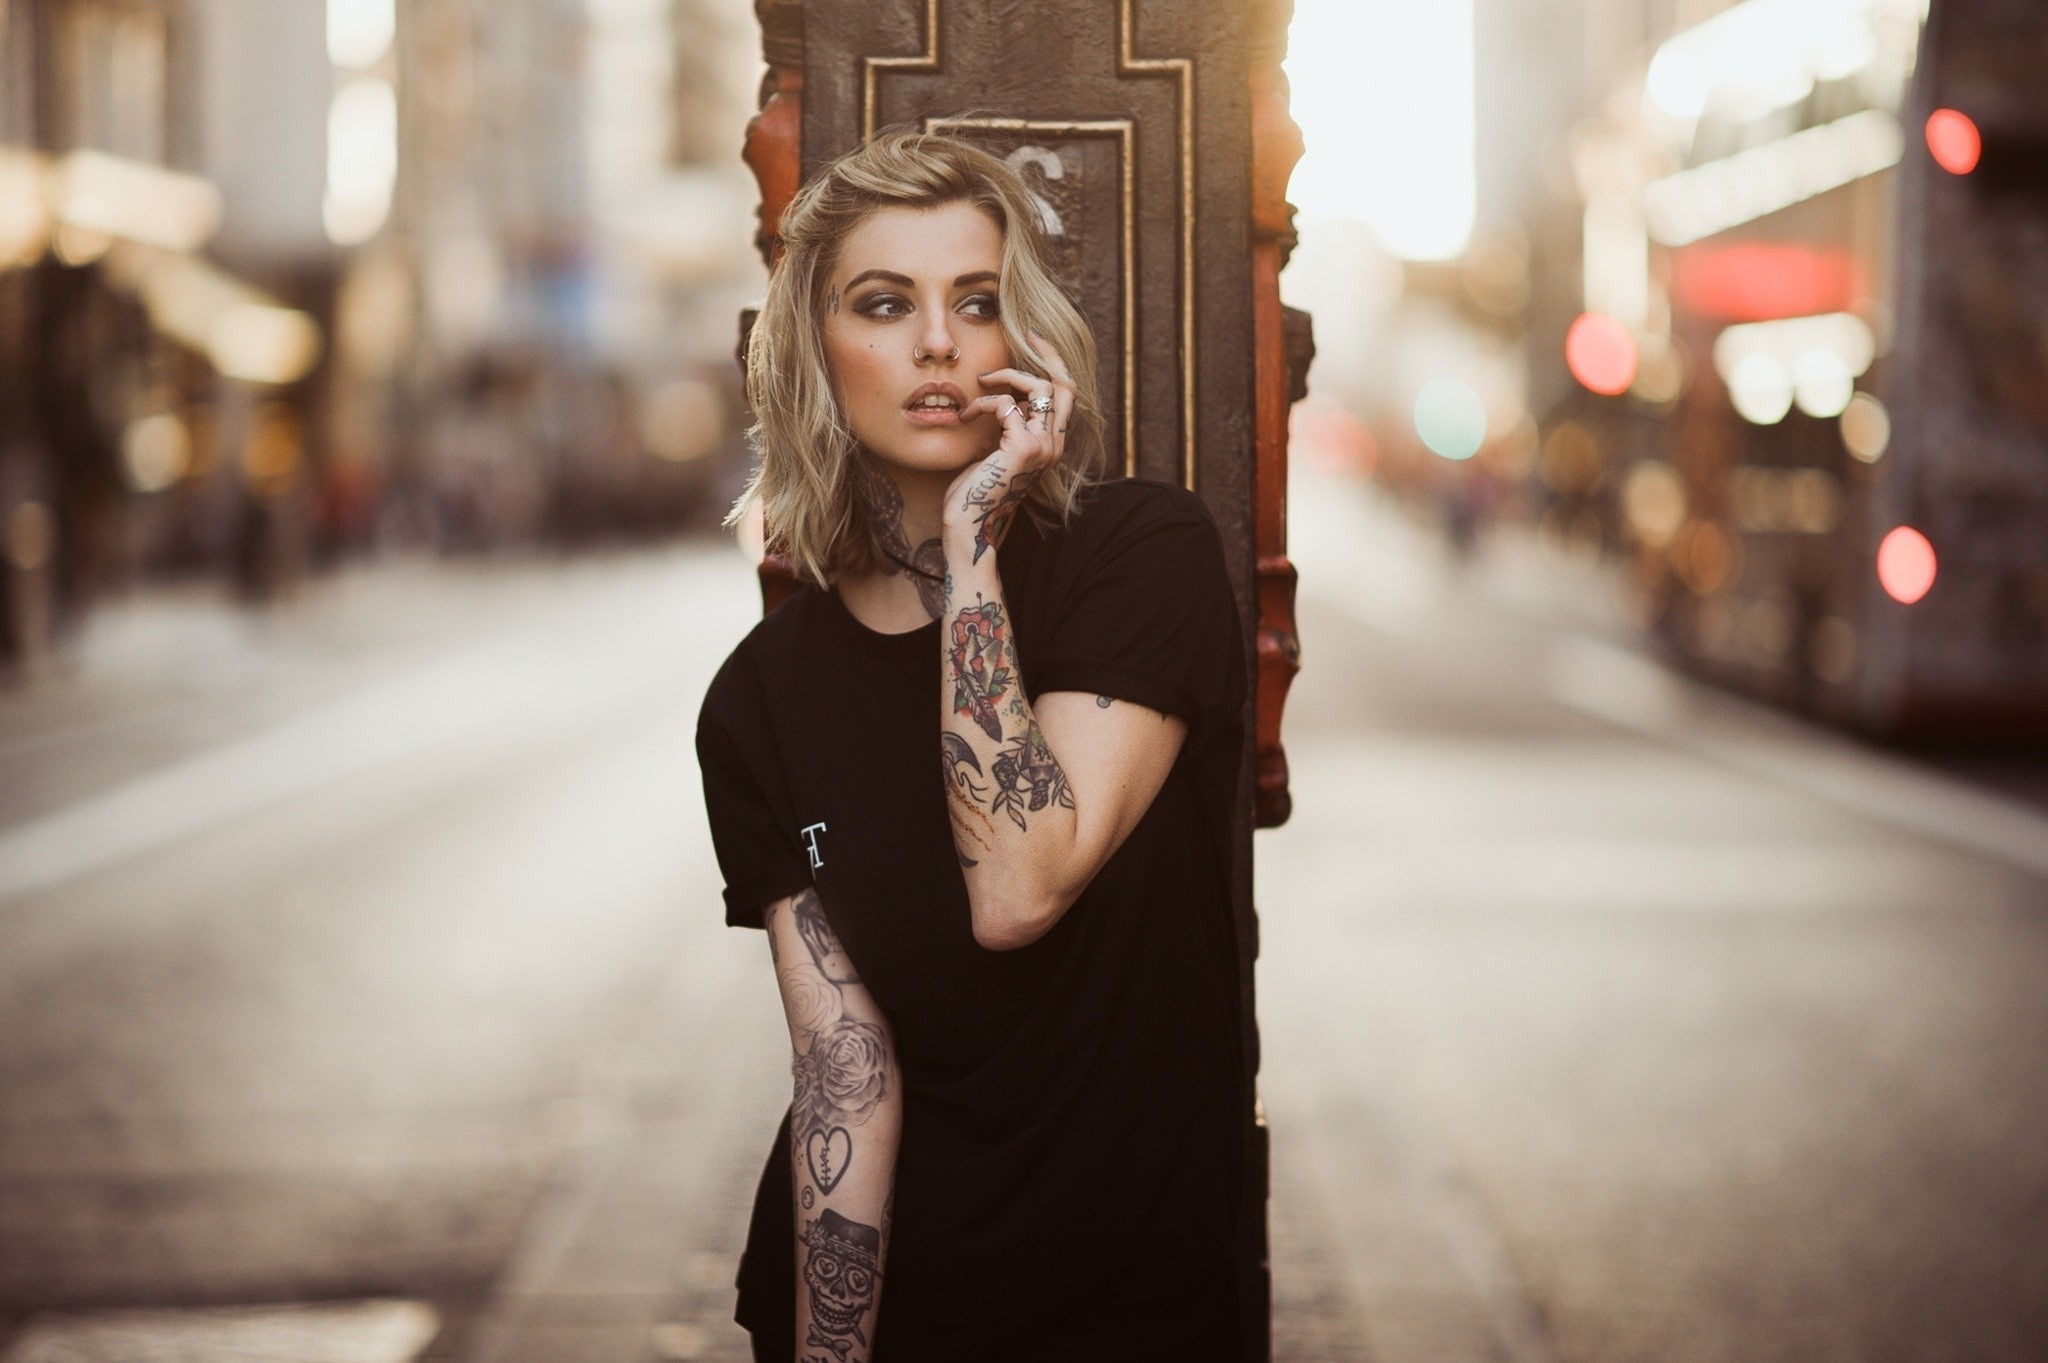 woman, with tattoos, leaning against a post.